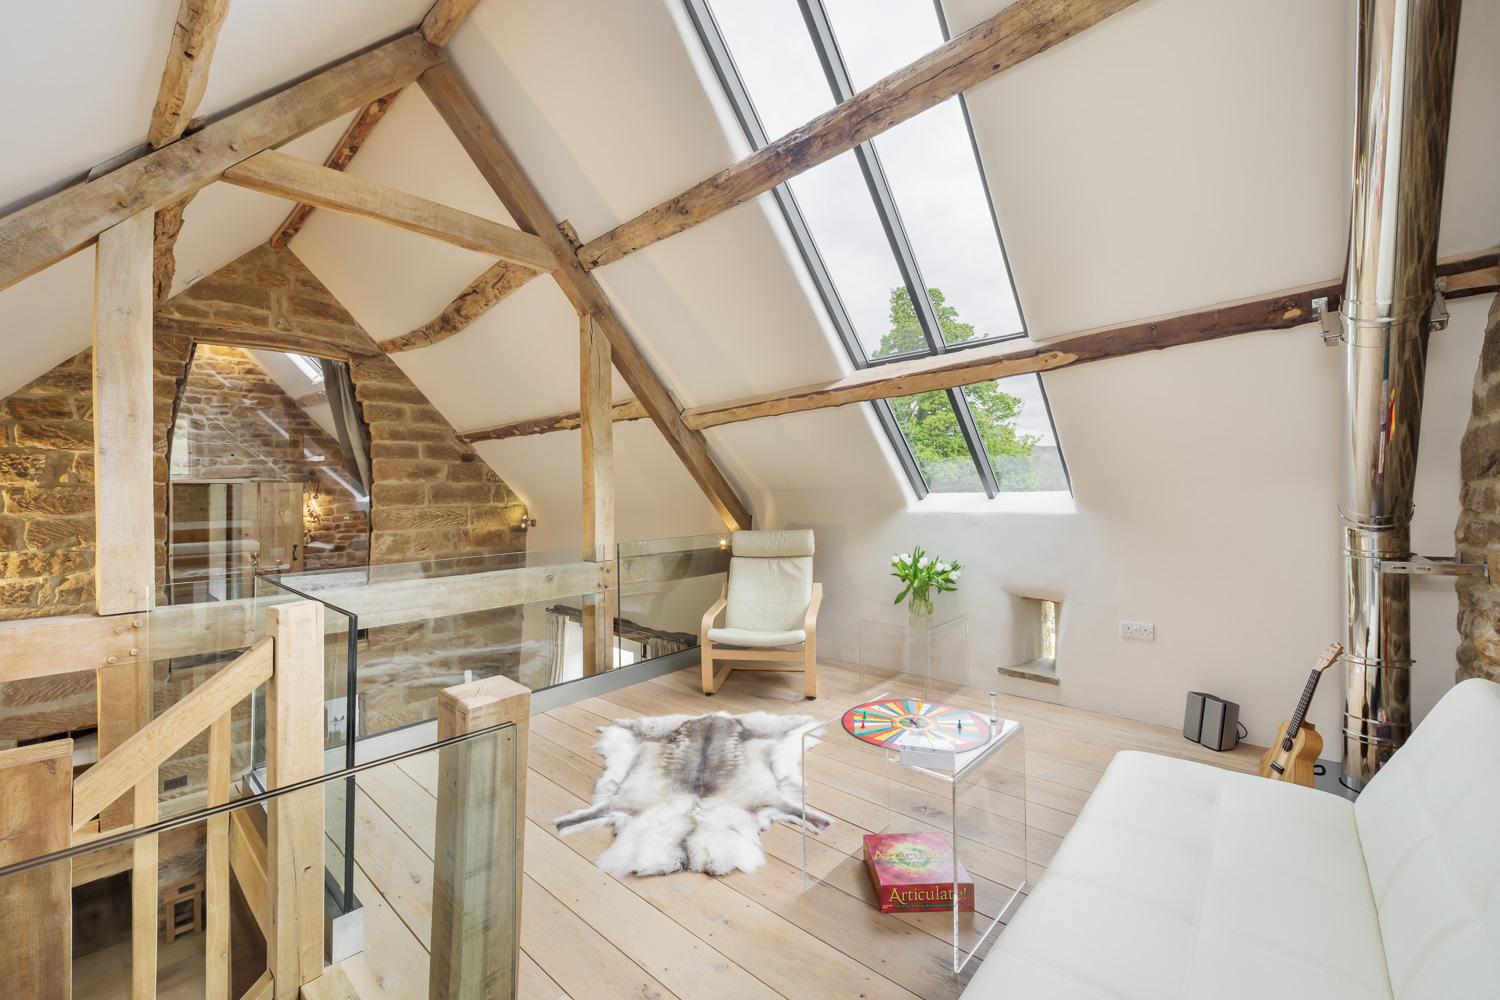 Great chill out space You could be enjoying this Design Award winning barn conversion this Autumn